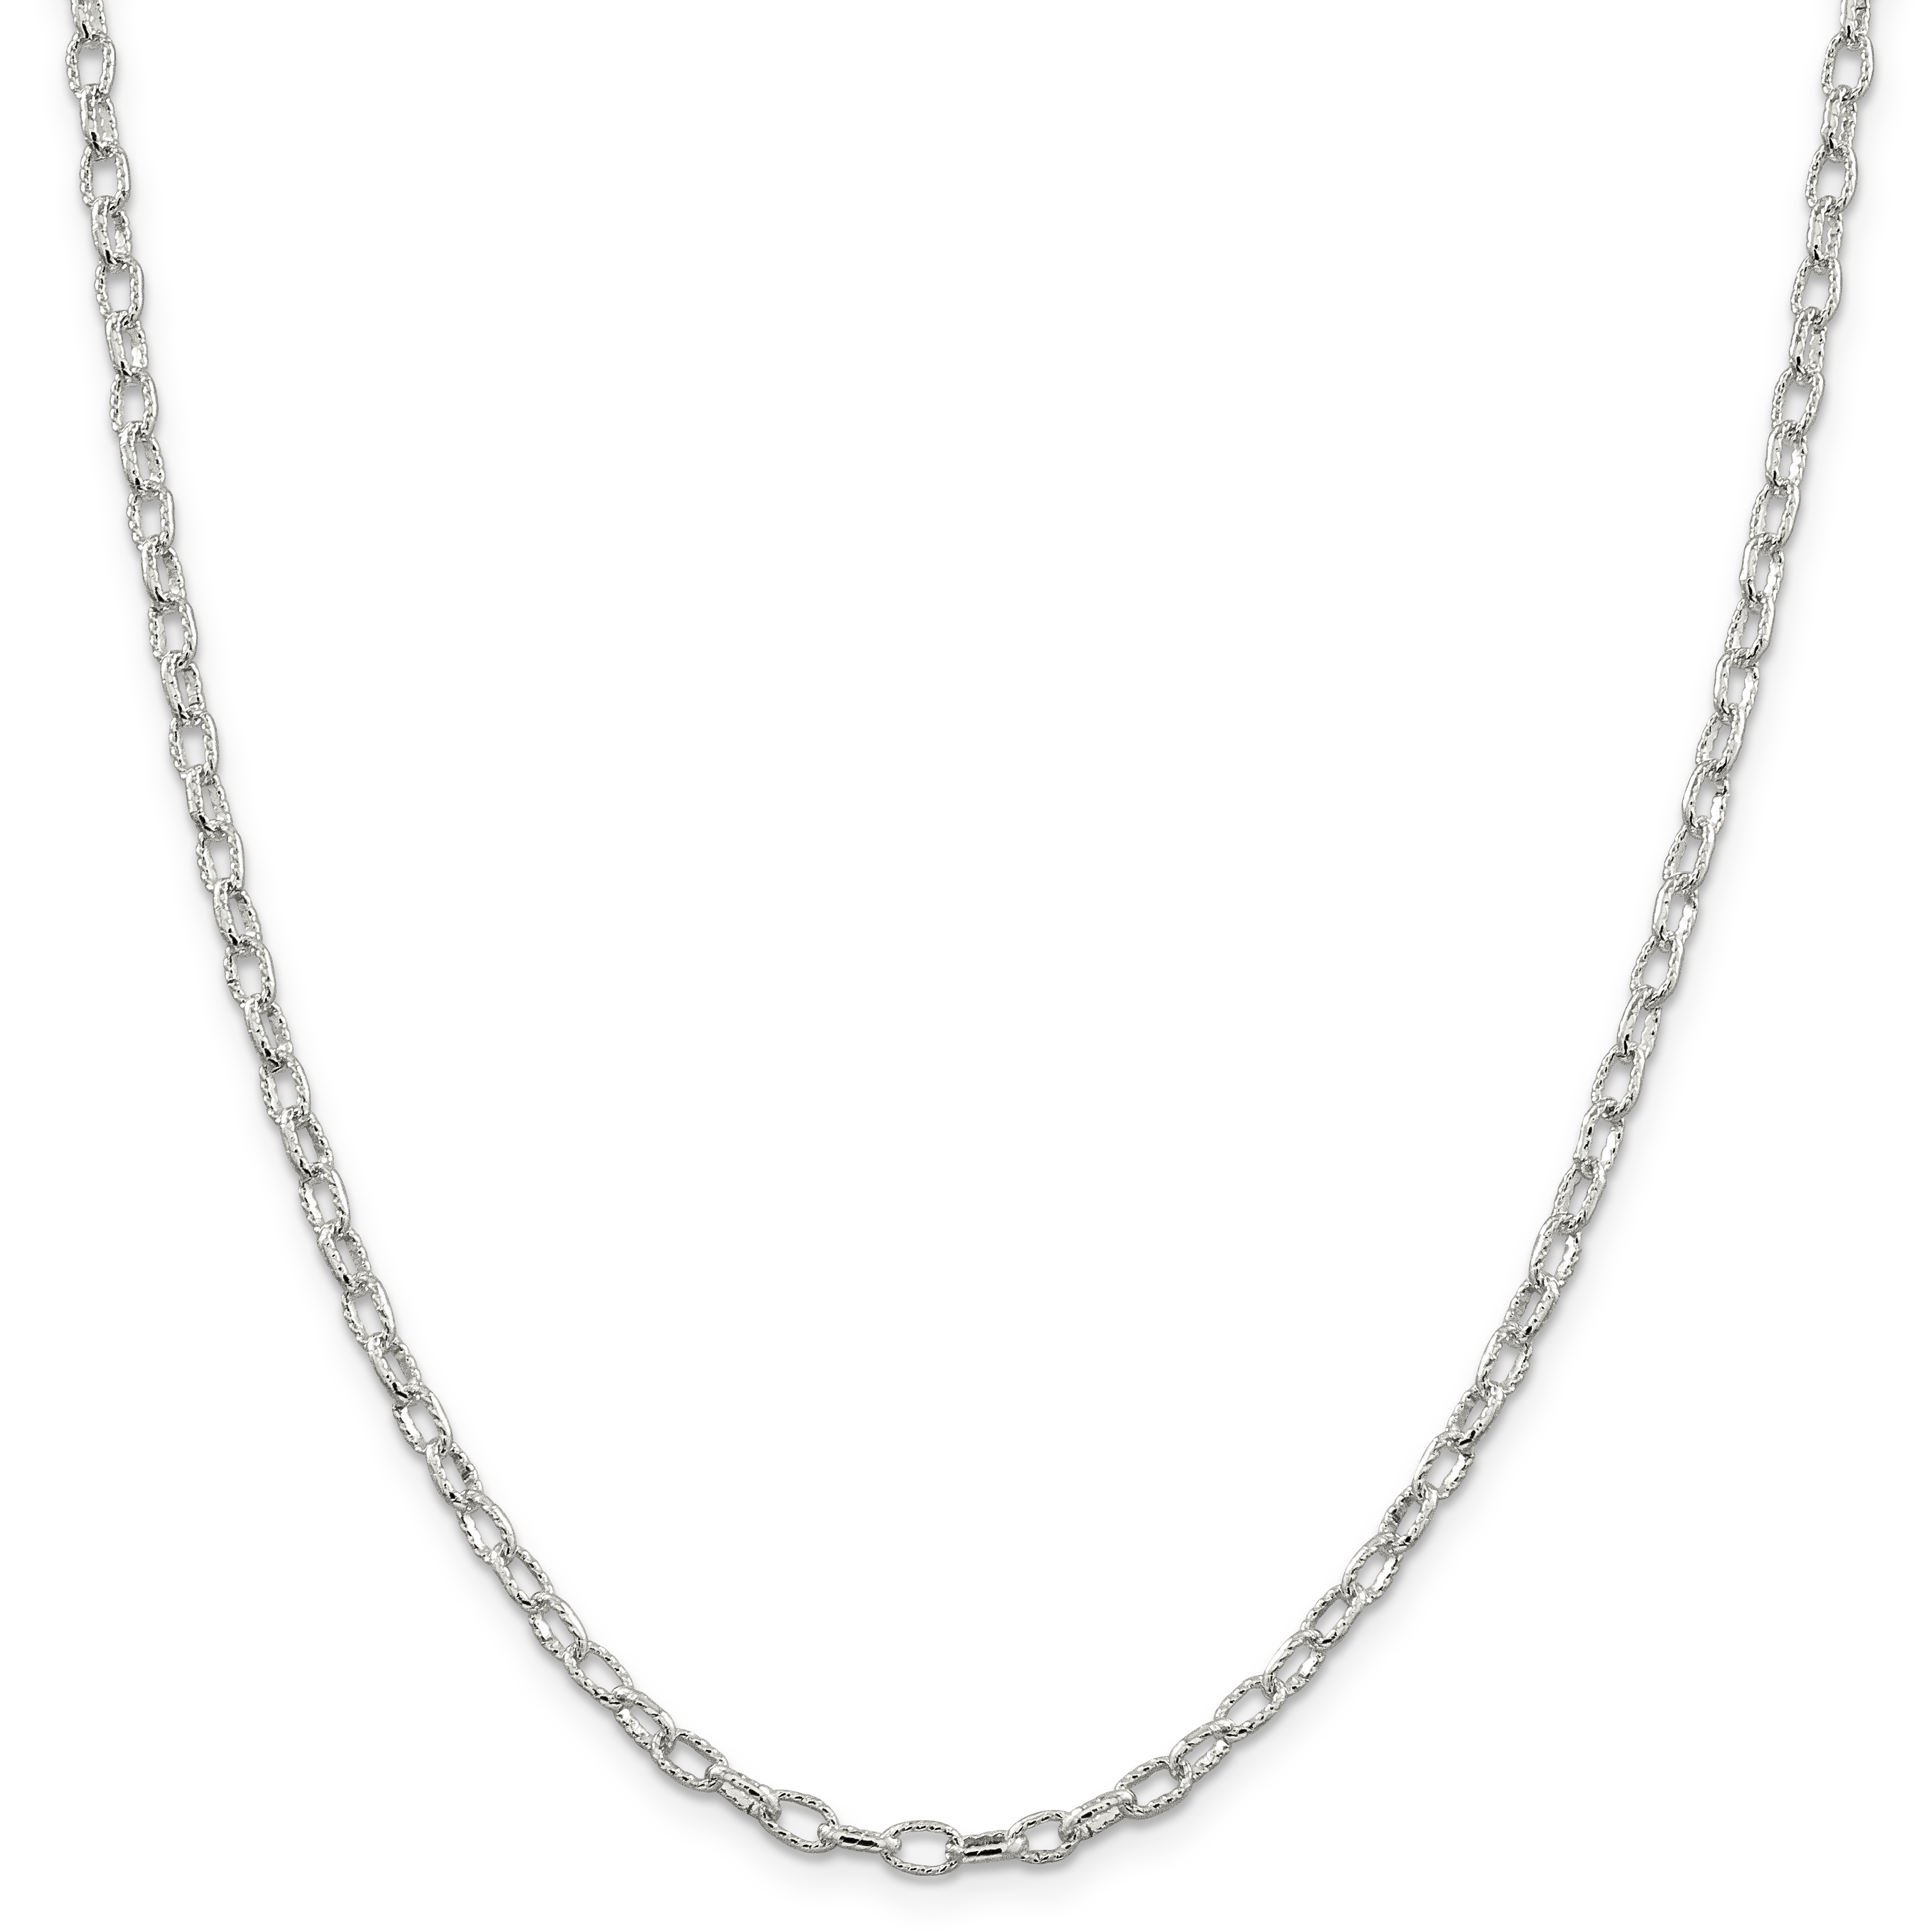 925 Sterling Silver 3.5mm Fancy Rolo Chain 30 Inch - image 5 de 5